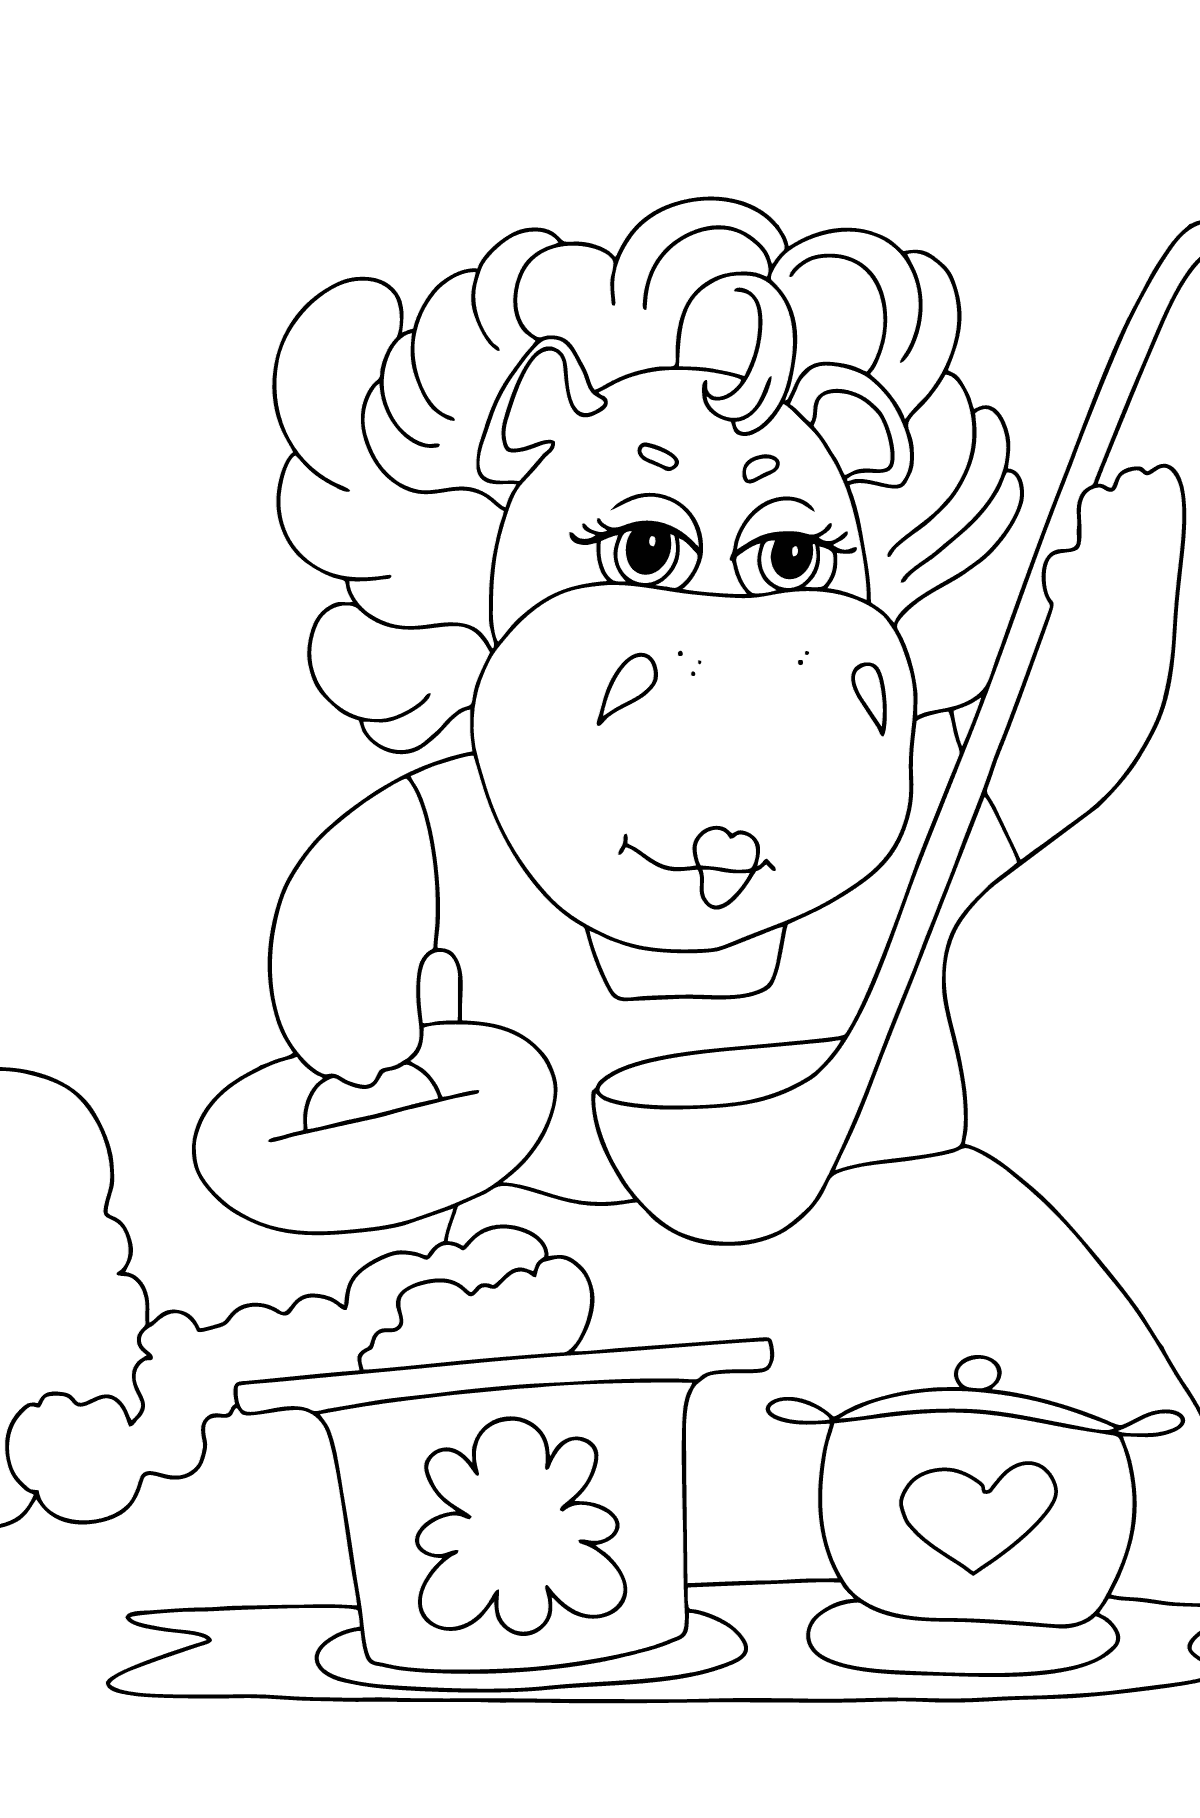 Coloring Page - A Hippo is Cooking Tasty Soup for Kids